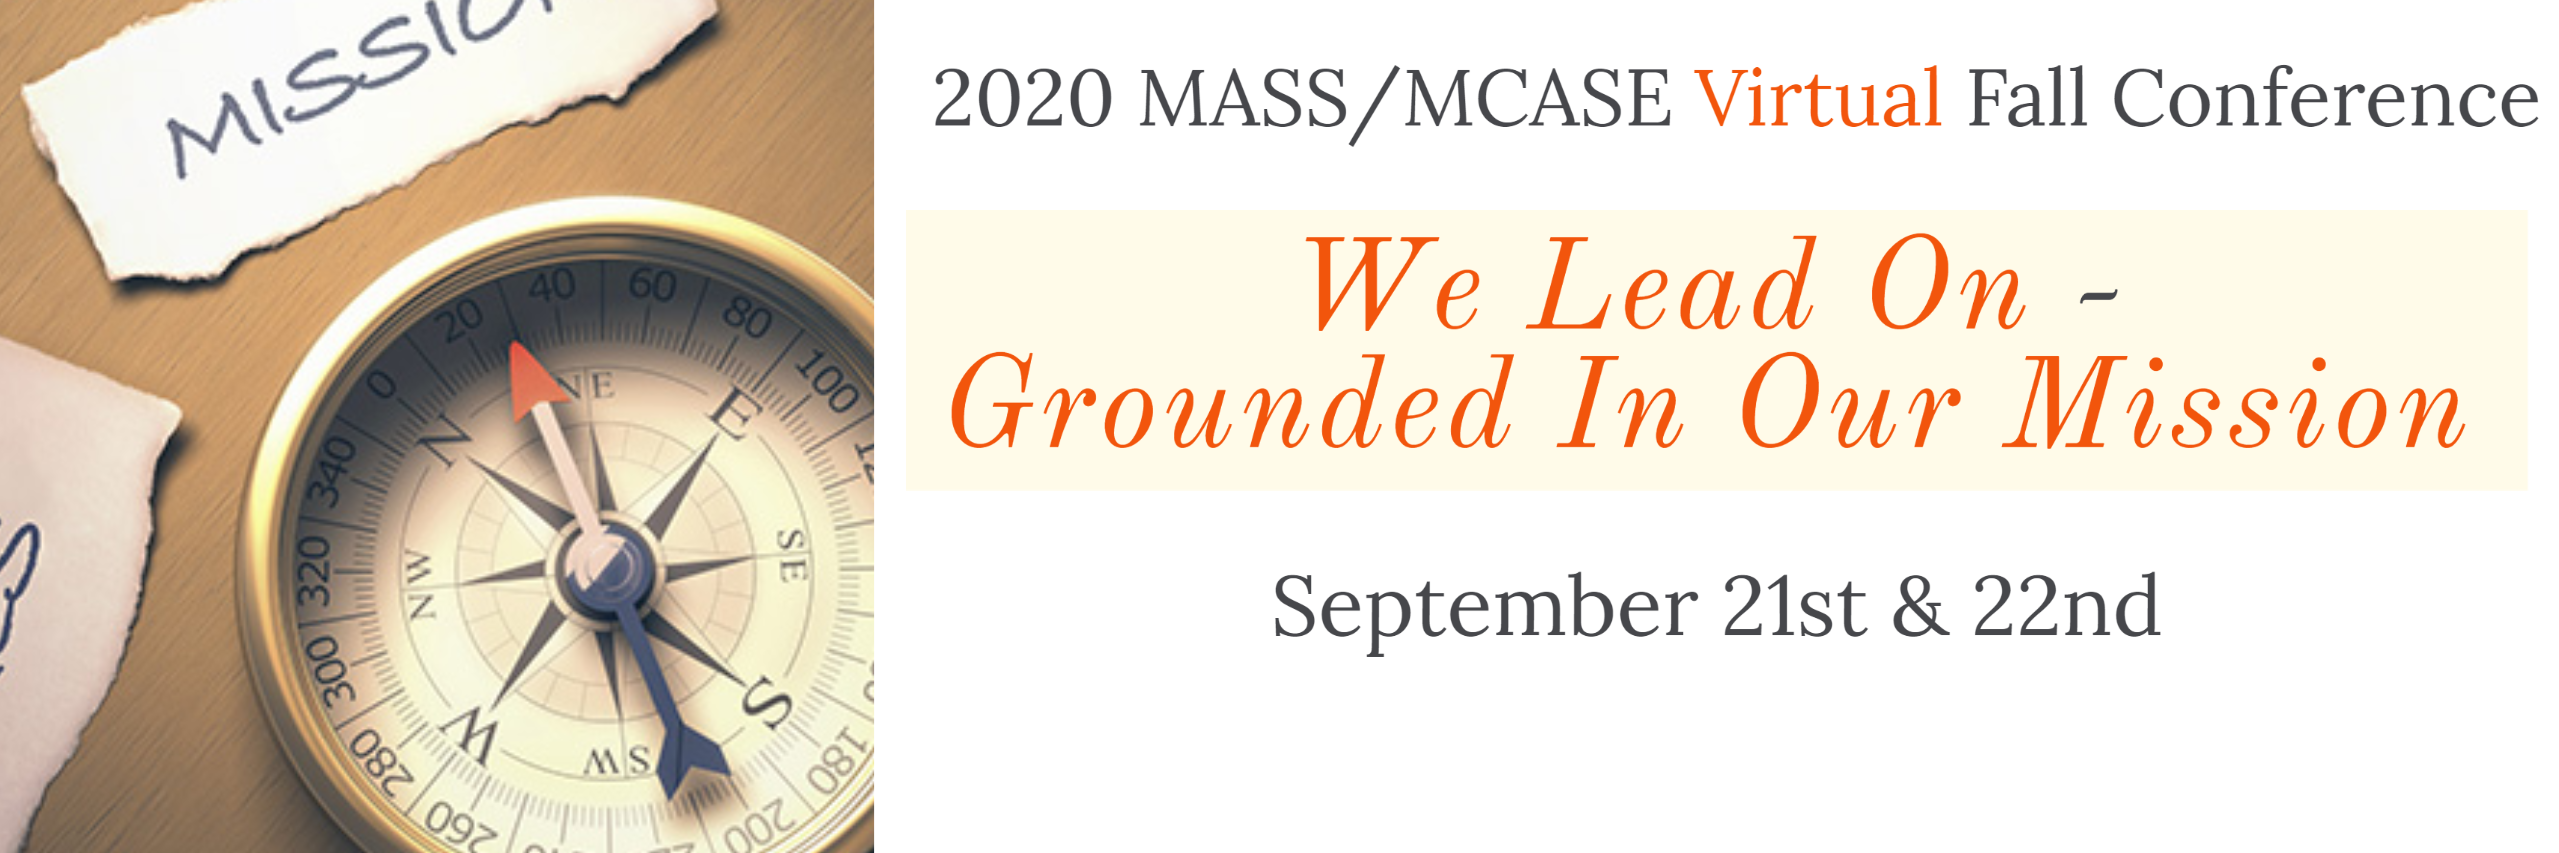 MASS_MCASE Virtual Fall Conference 2020-2.png - 1.29 Mb